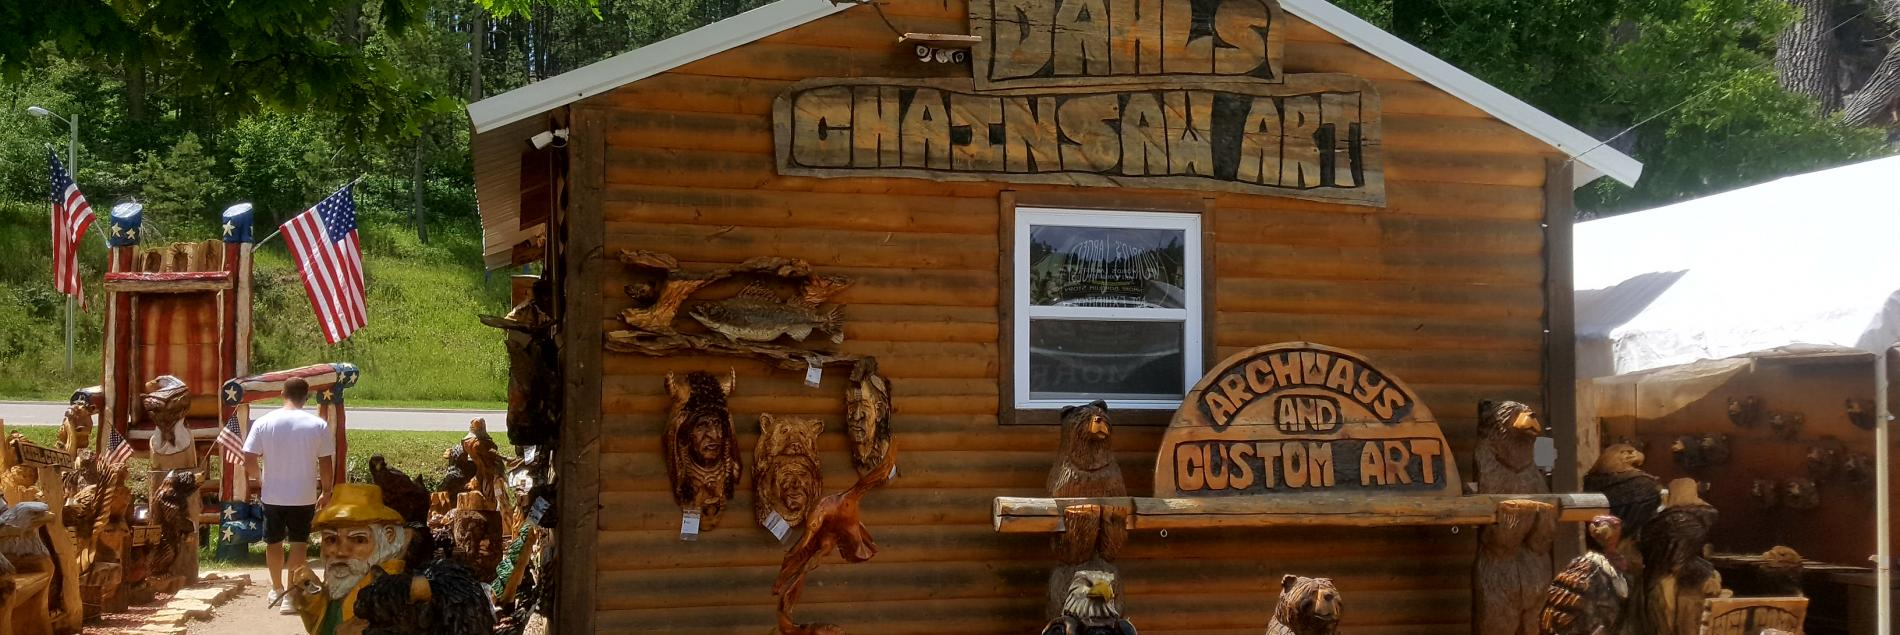 Dahl's Chainsaw Art - Keystone